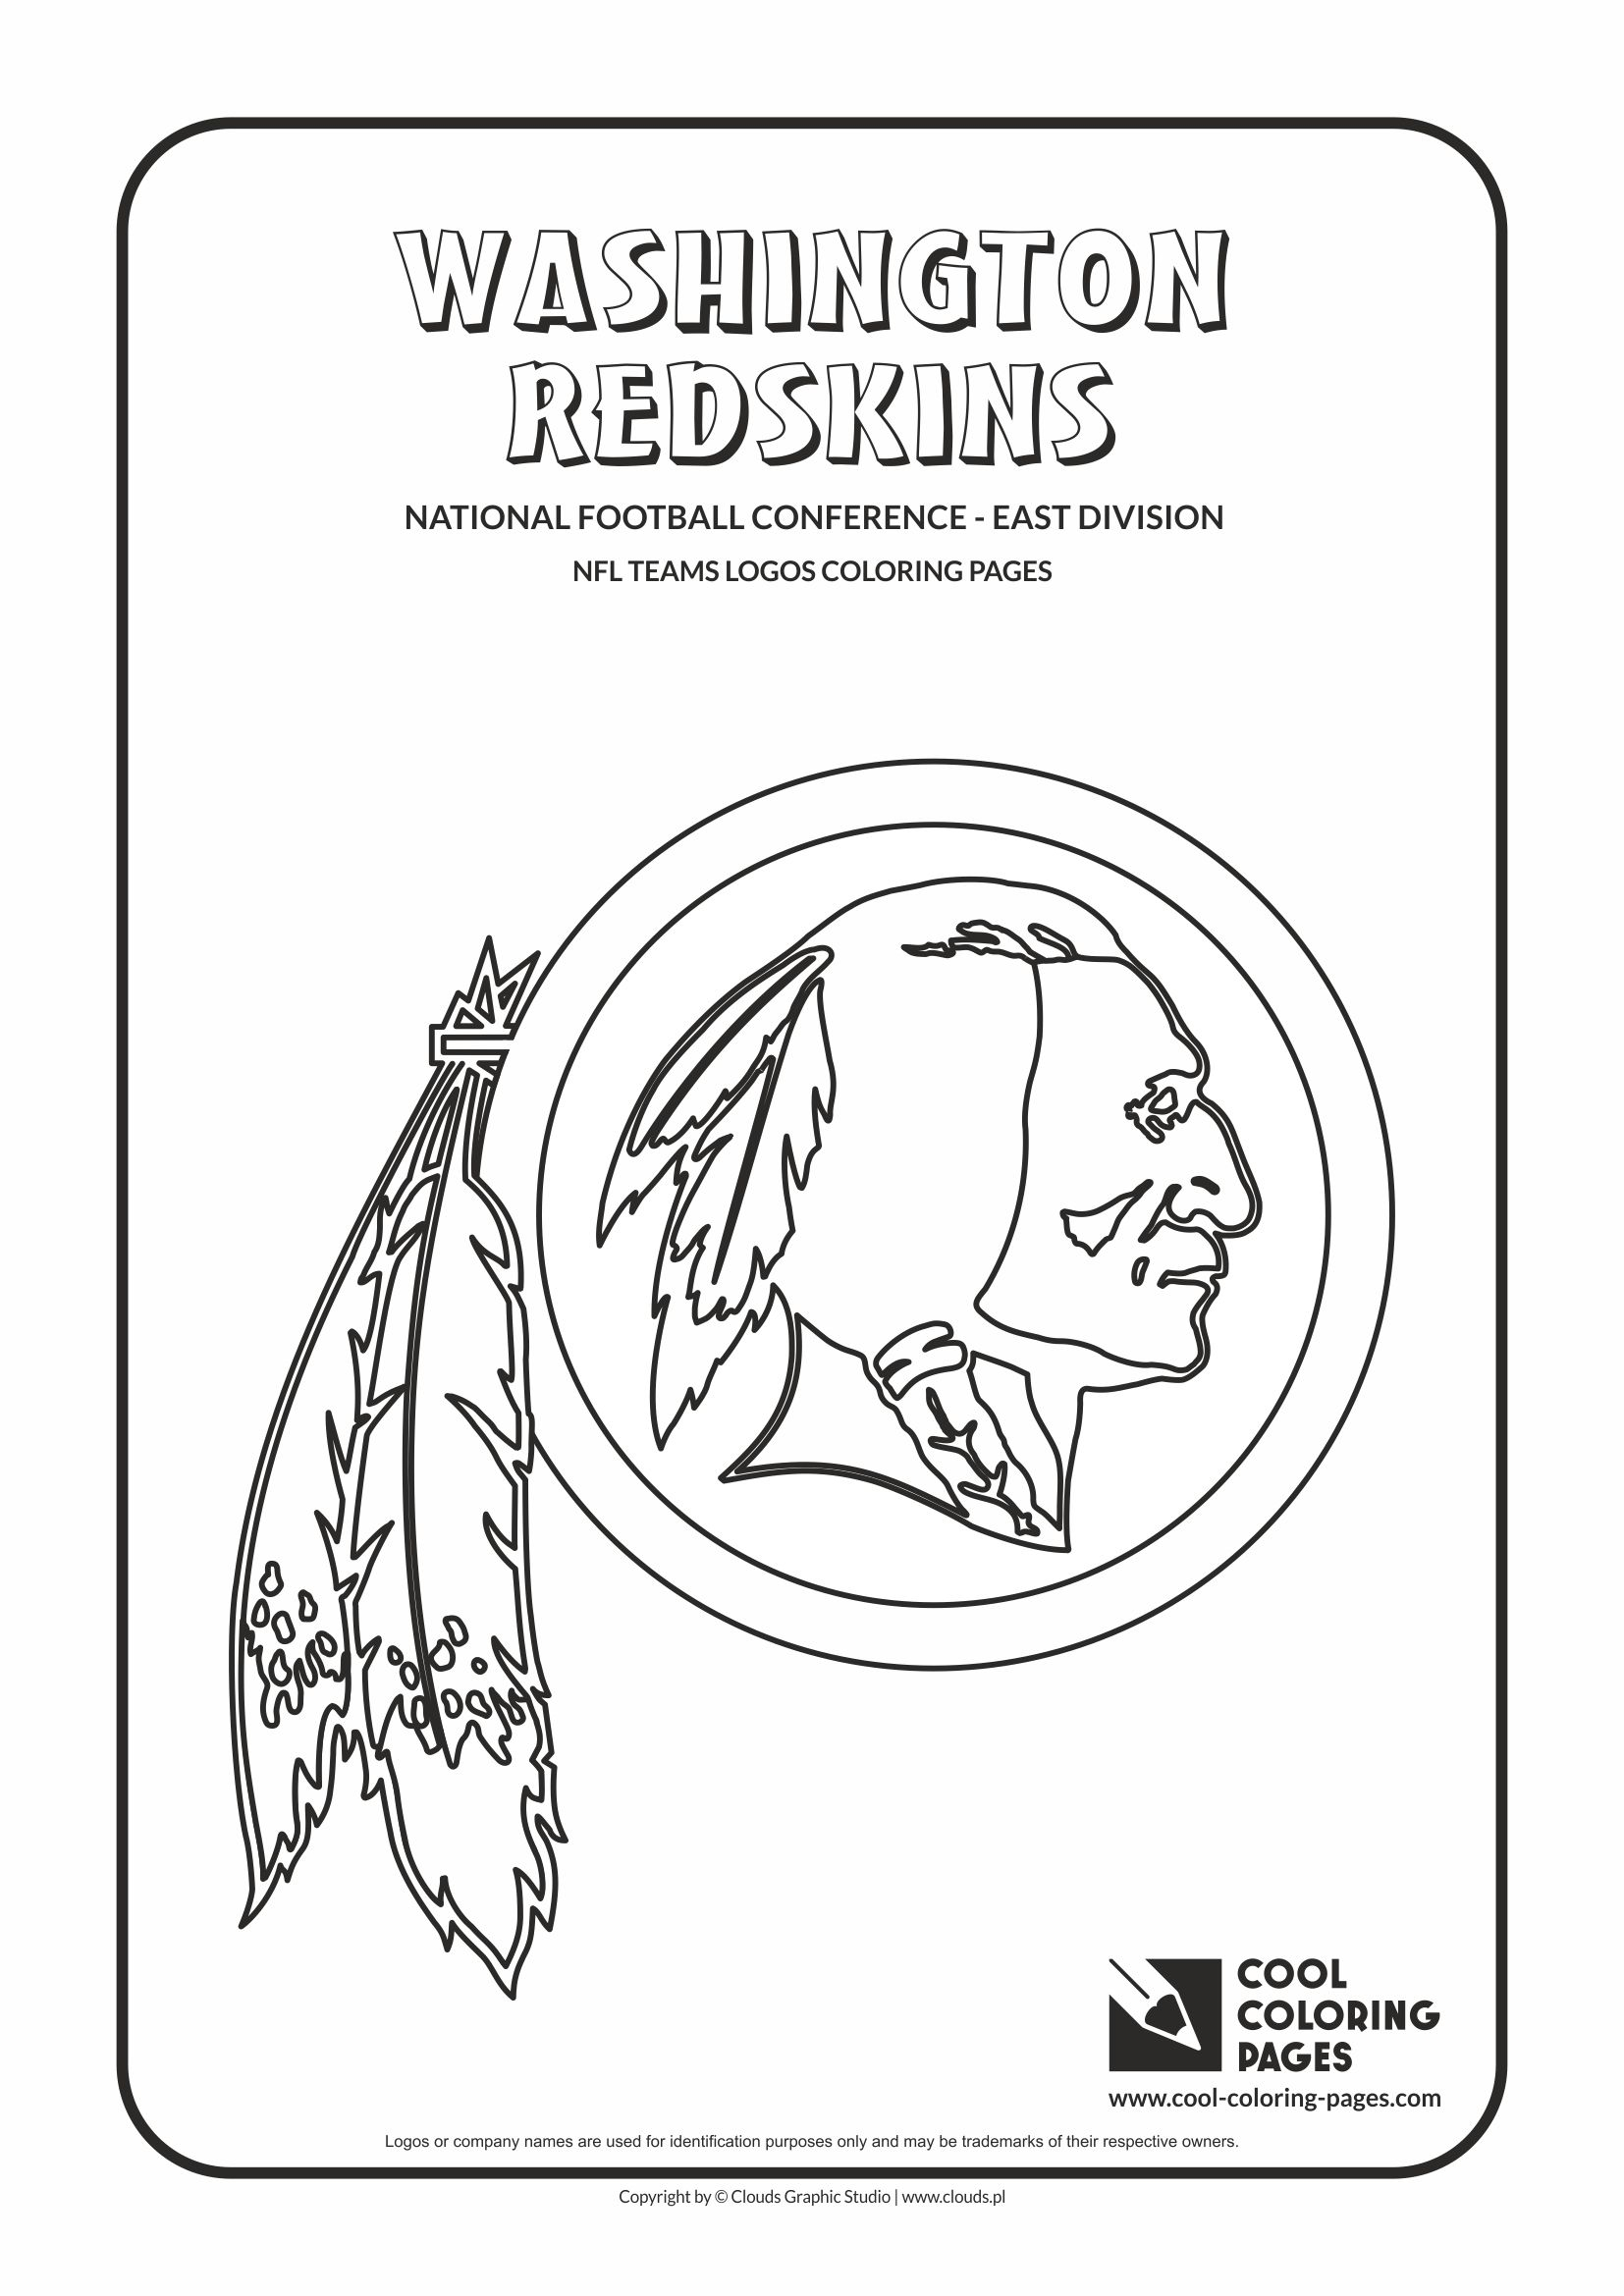 nfl logo coloring pages - nfl teams logos coloring pages